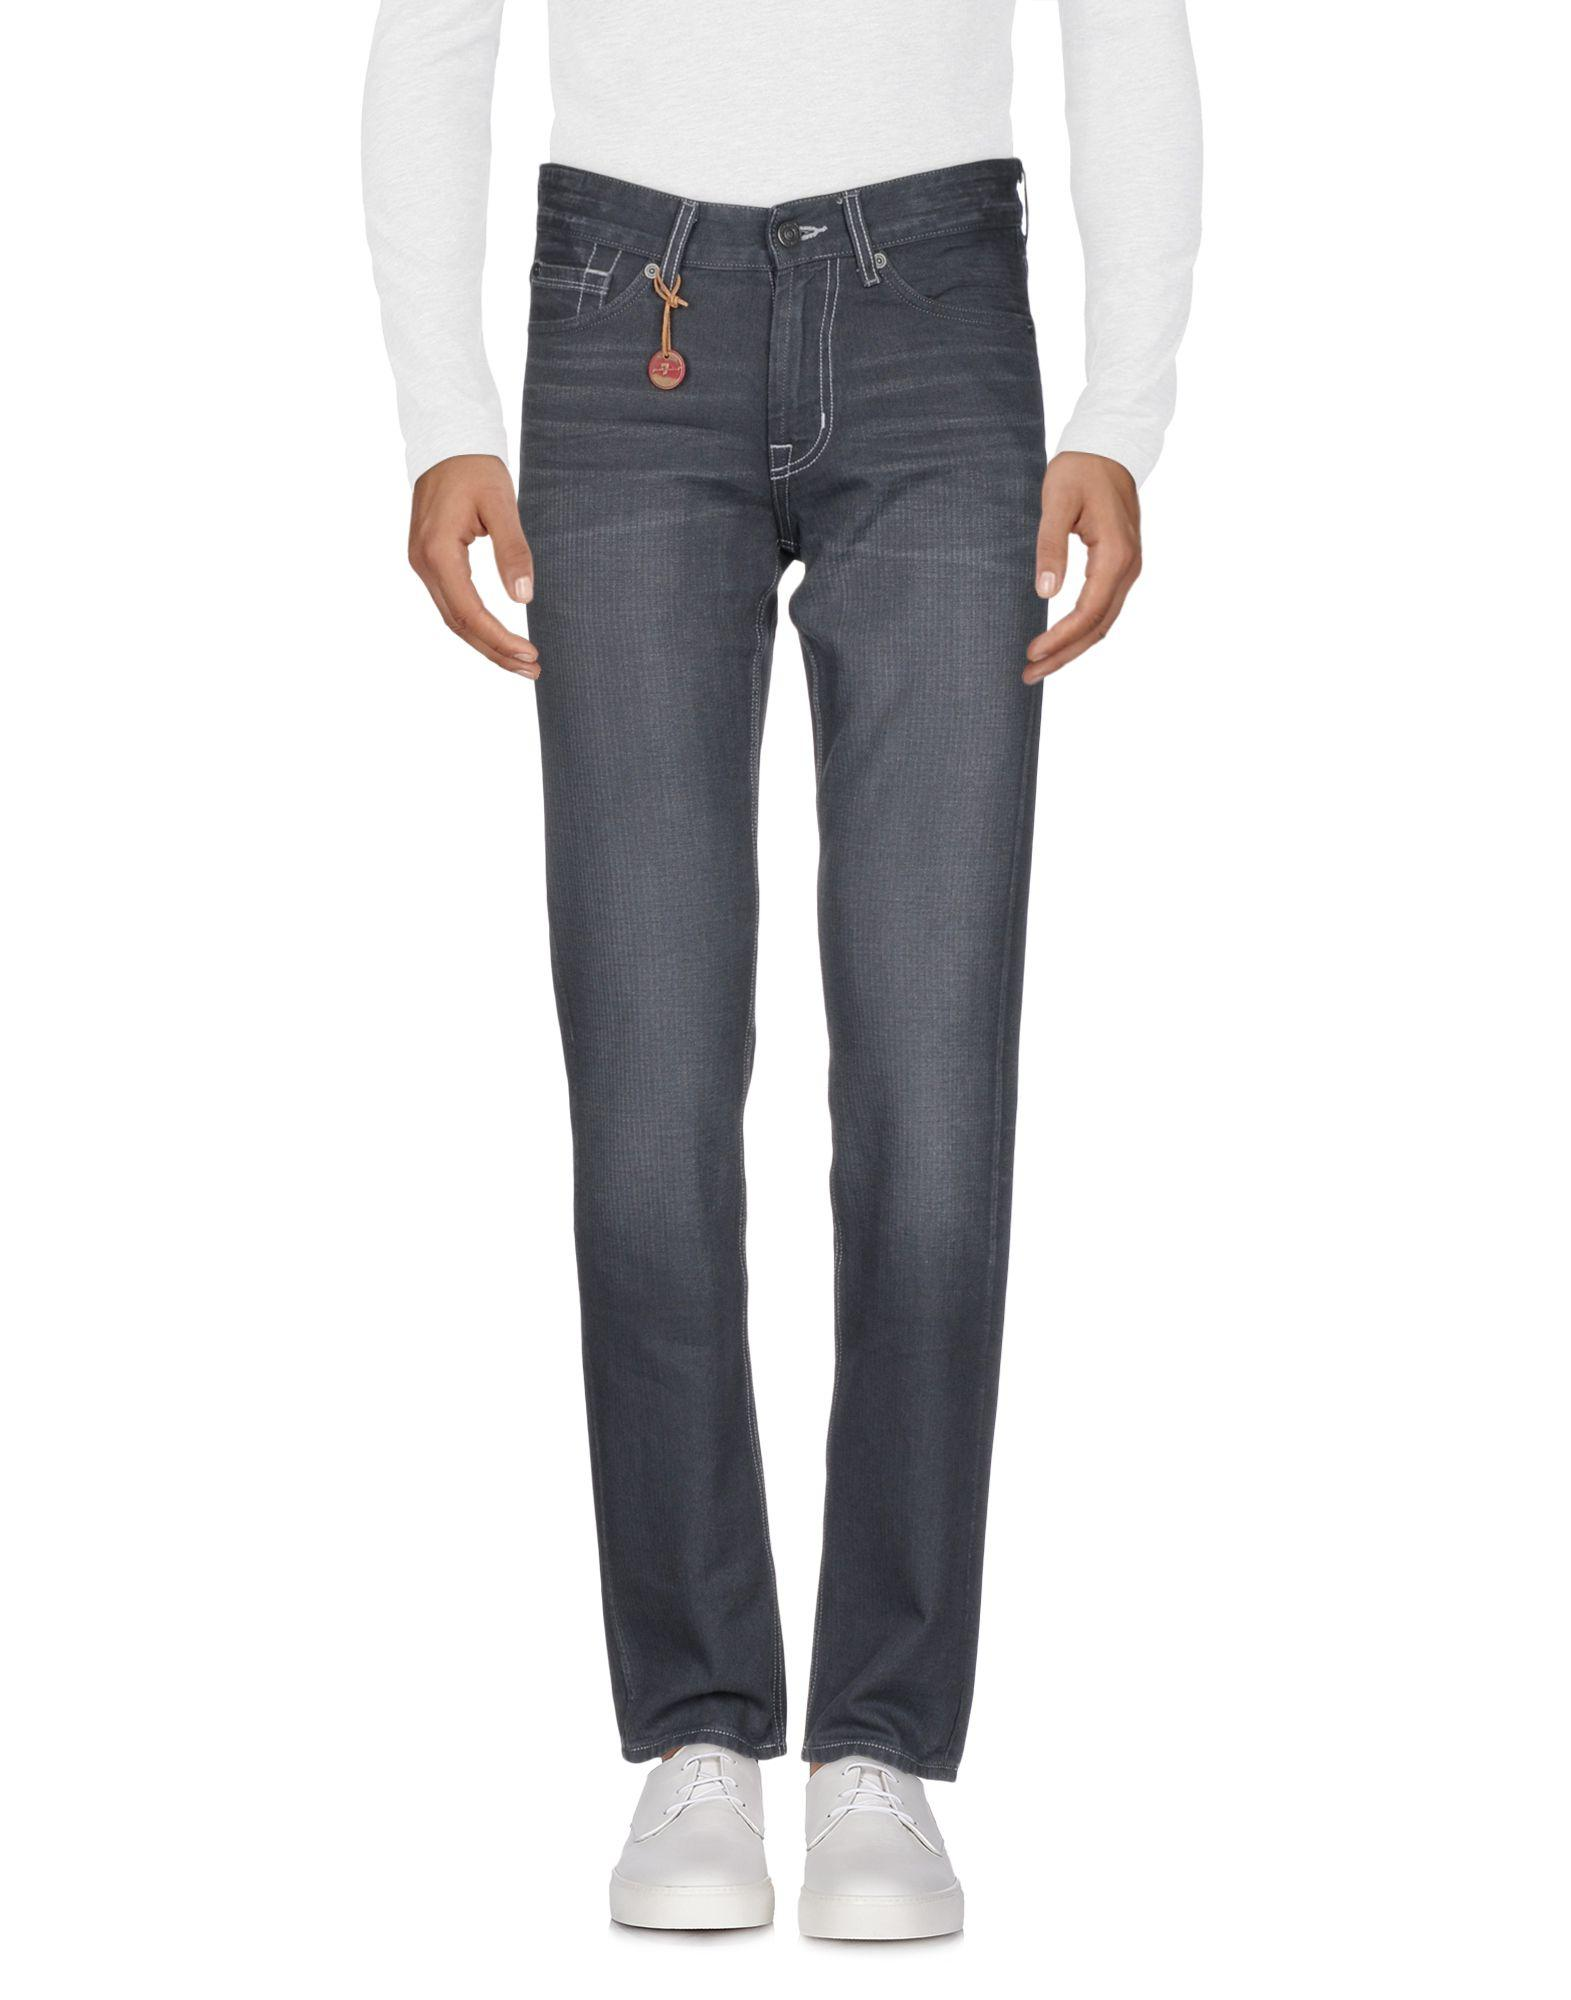 7 For All Mankind Jeans In Lead